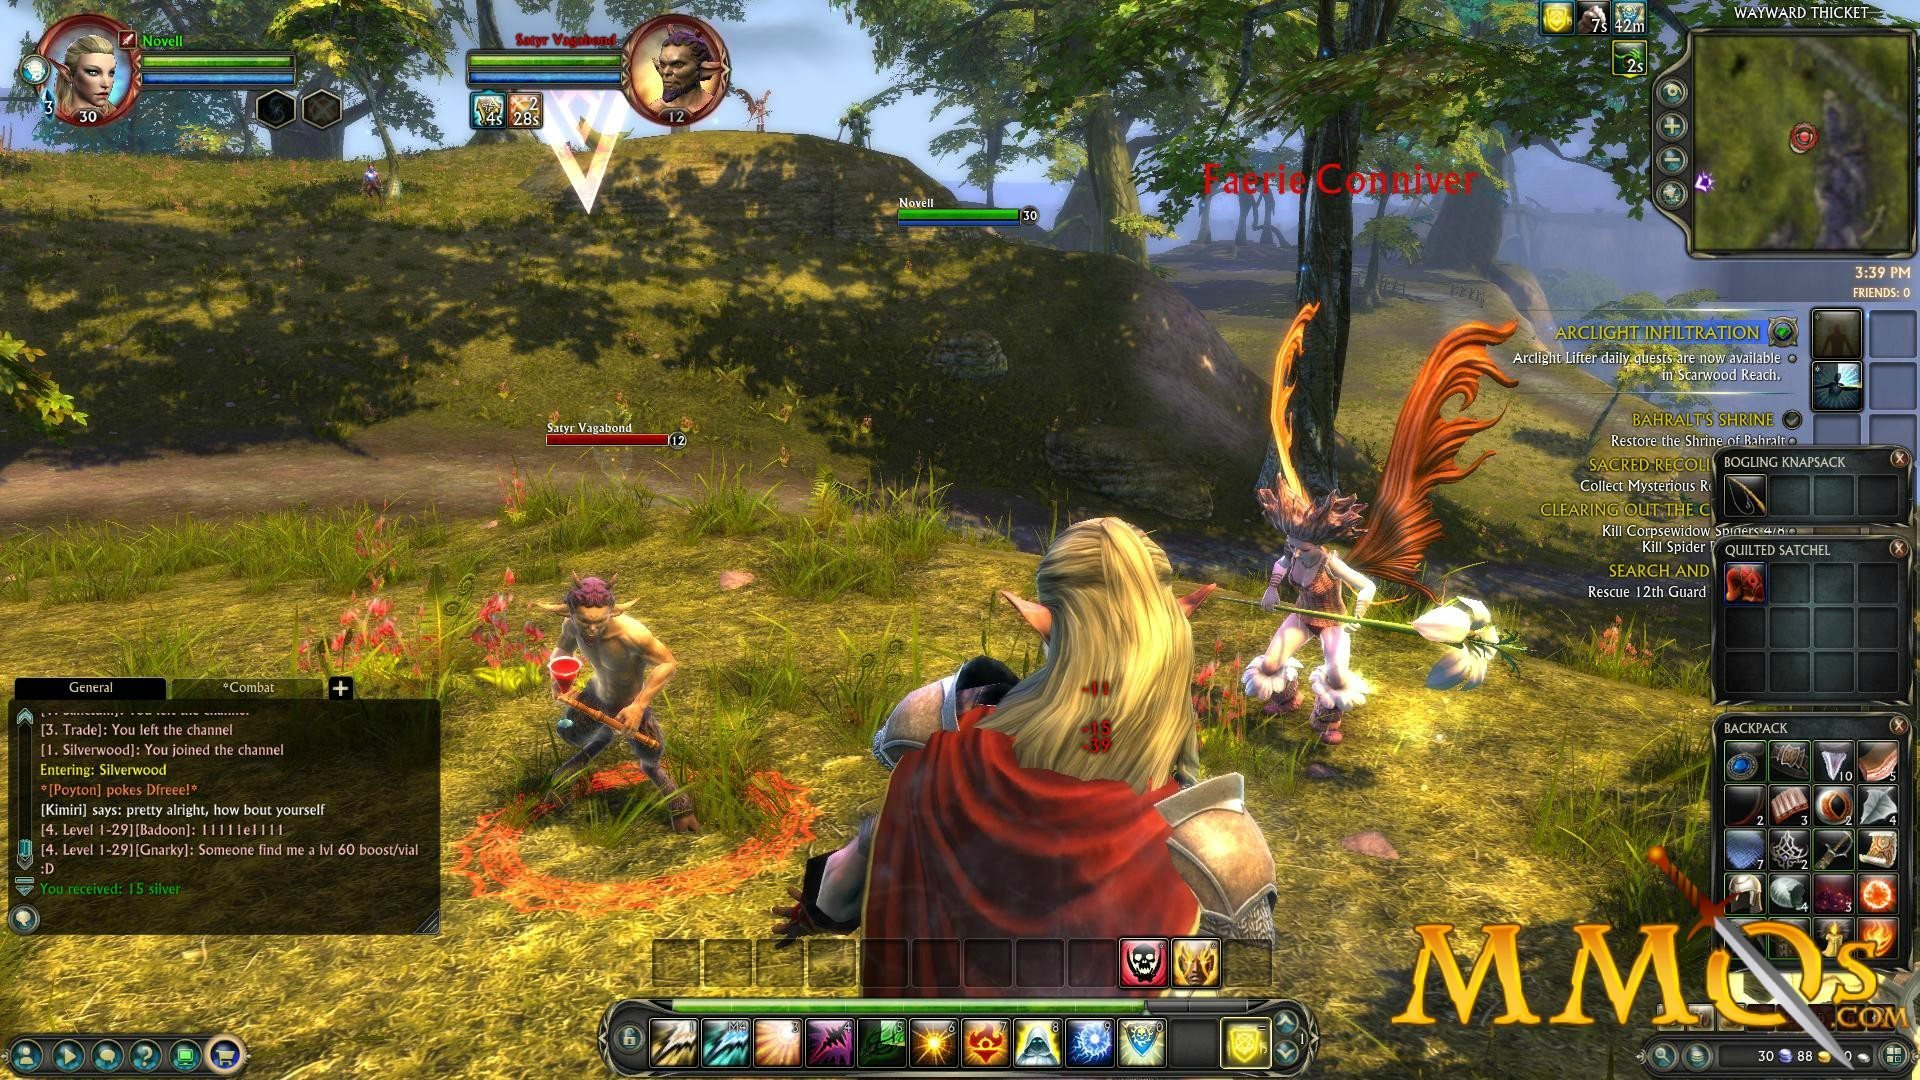 Rift Online El Mmo Free-to-play Rift Obtiene Un Servidor Pay-to-play